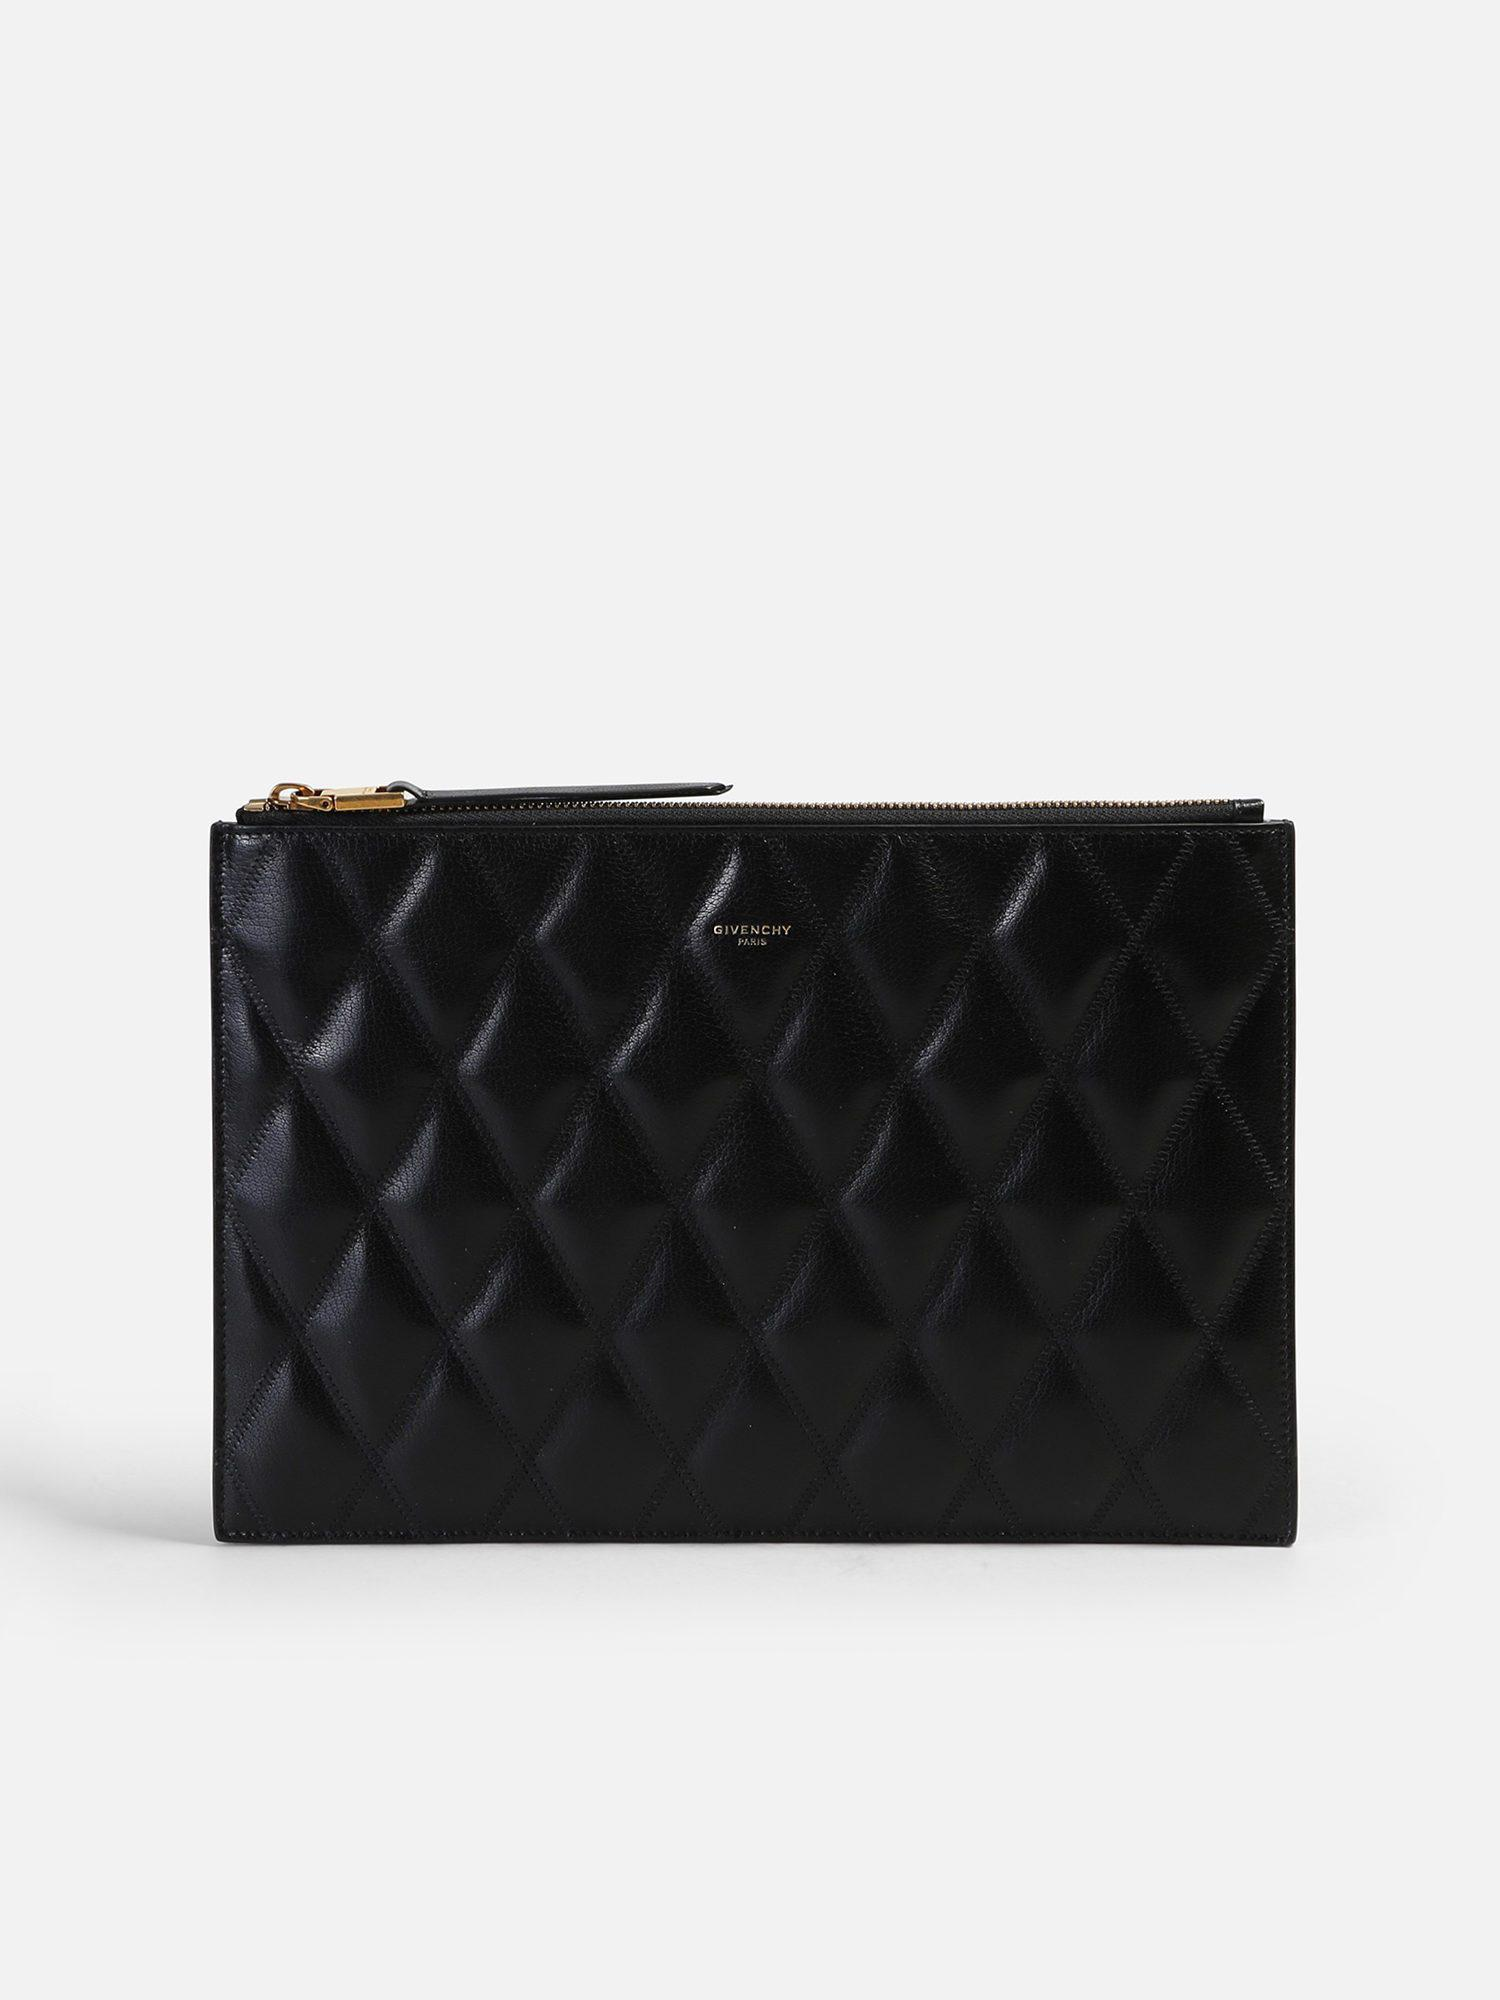 4405b7f96d Lyst - Givenchy Quilted Leather Clutch in Black